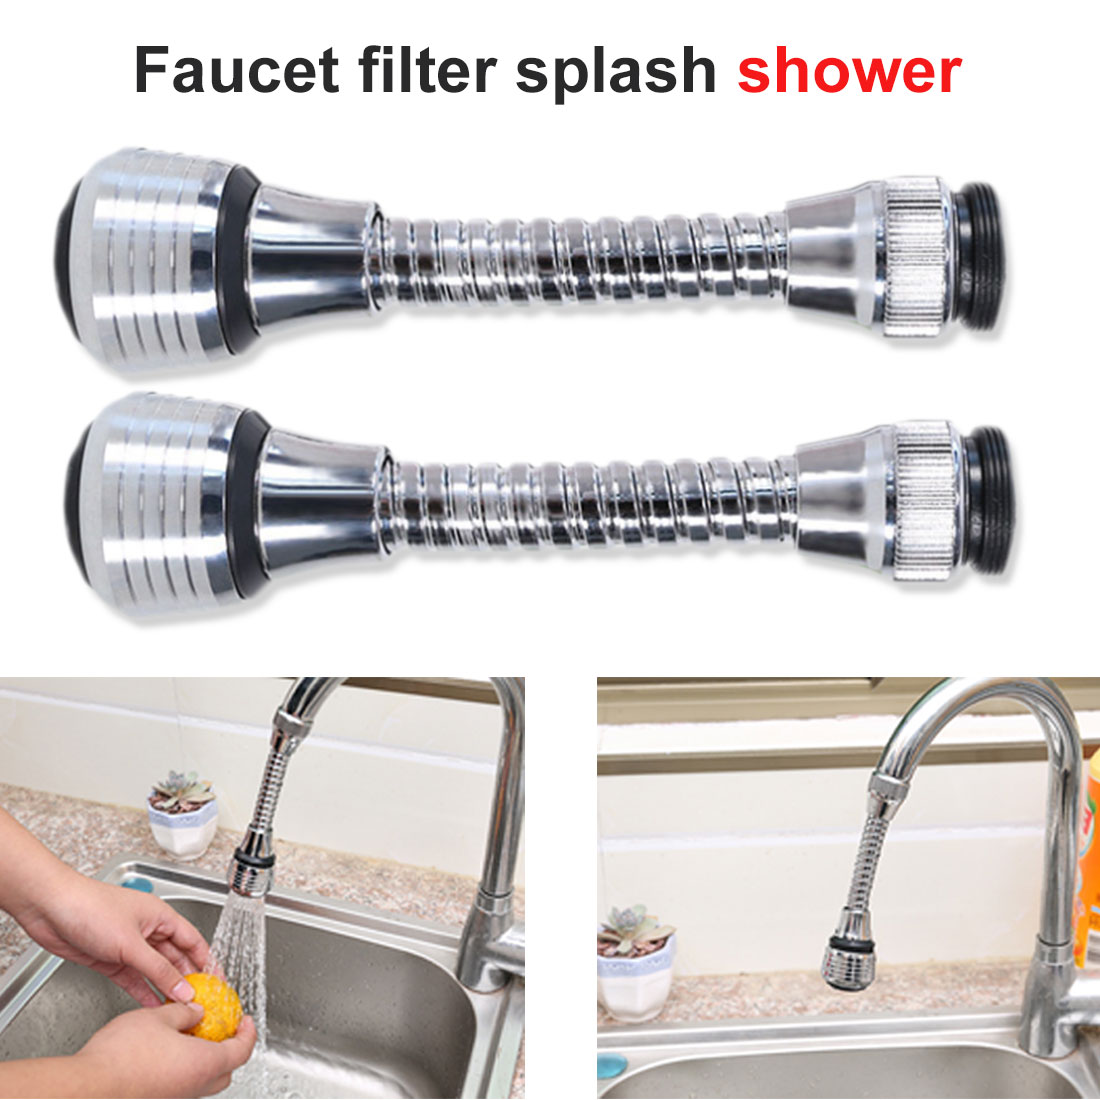 Kitchen Faucet Home Supplies 360 Degree Rotate Faucet Nozzle Faucet Kitchen Sprayer Head Water Saving Taps Applications